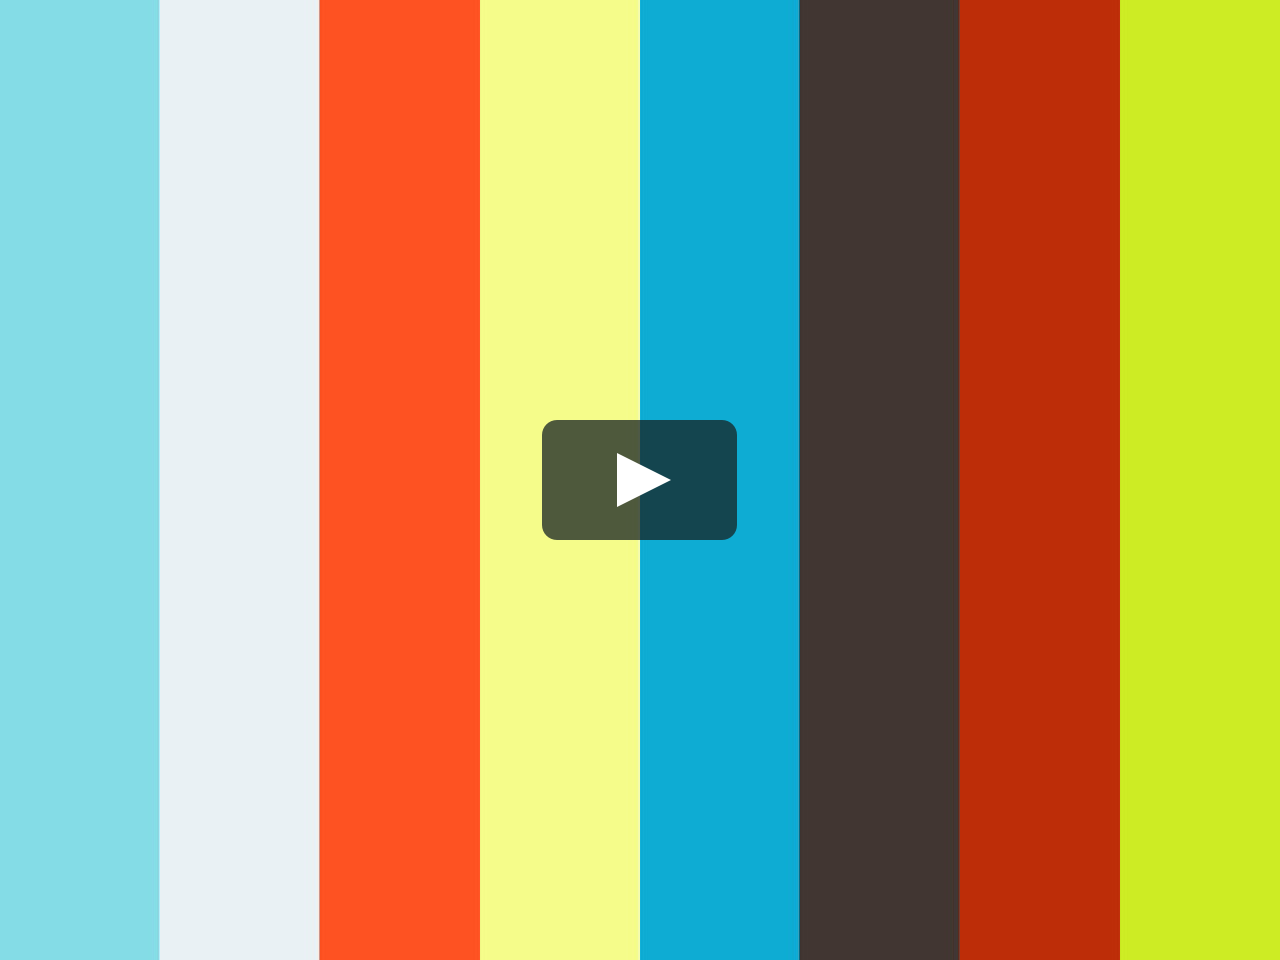 Kimi No Na Wa FuLLmoVIEStreamingOnline Dvd Rip 1080p On Vimeo